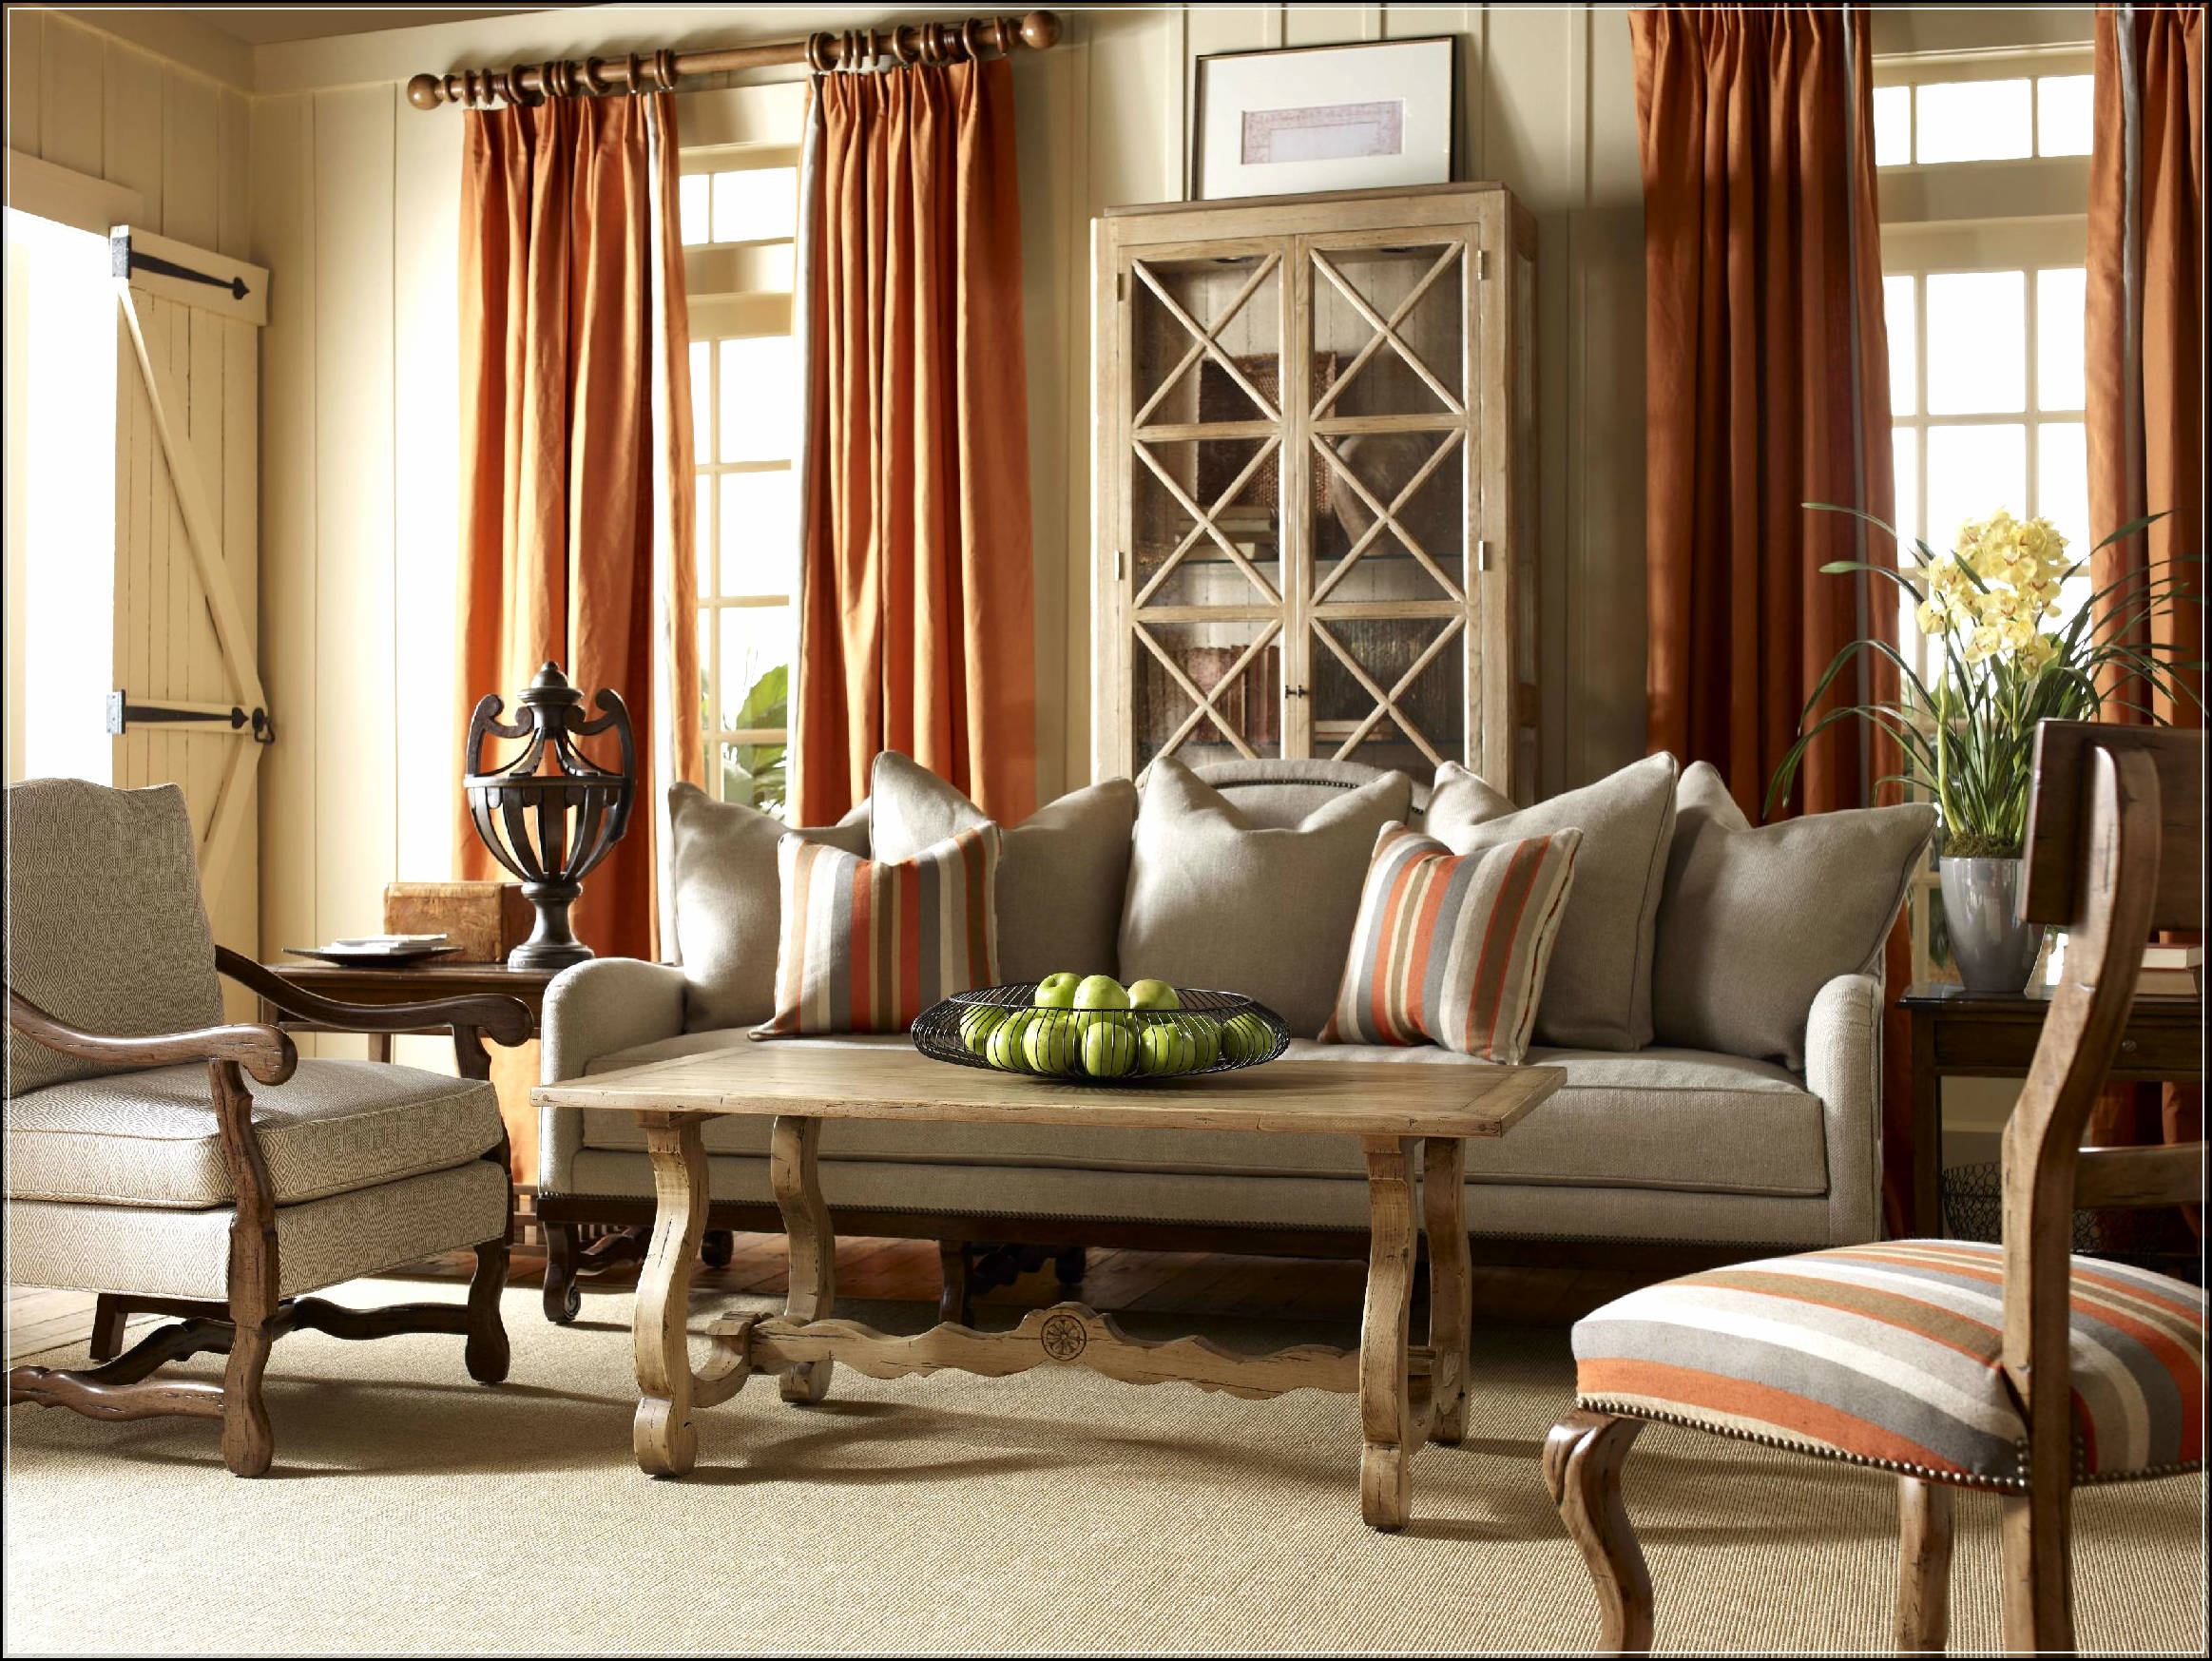 Neutral colors for home interior.